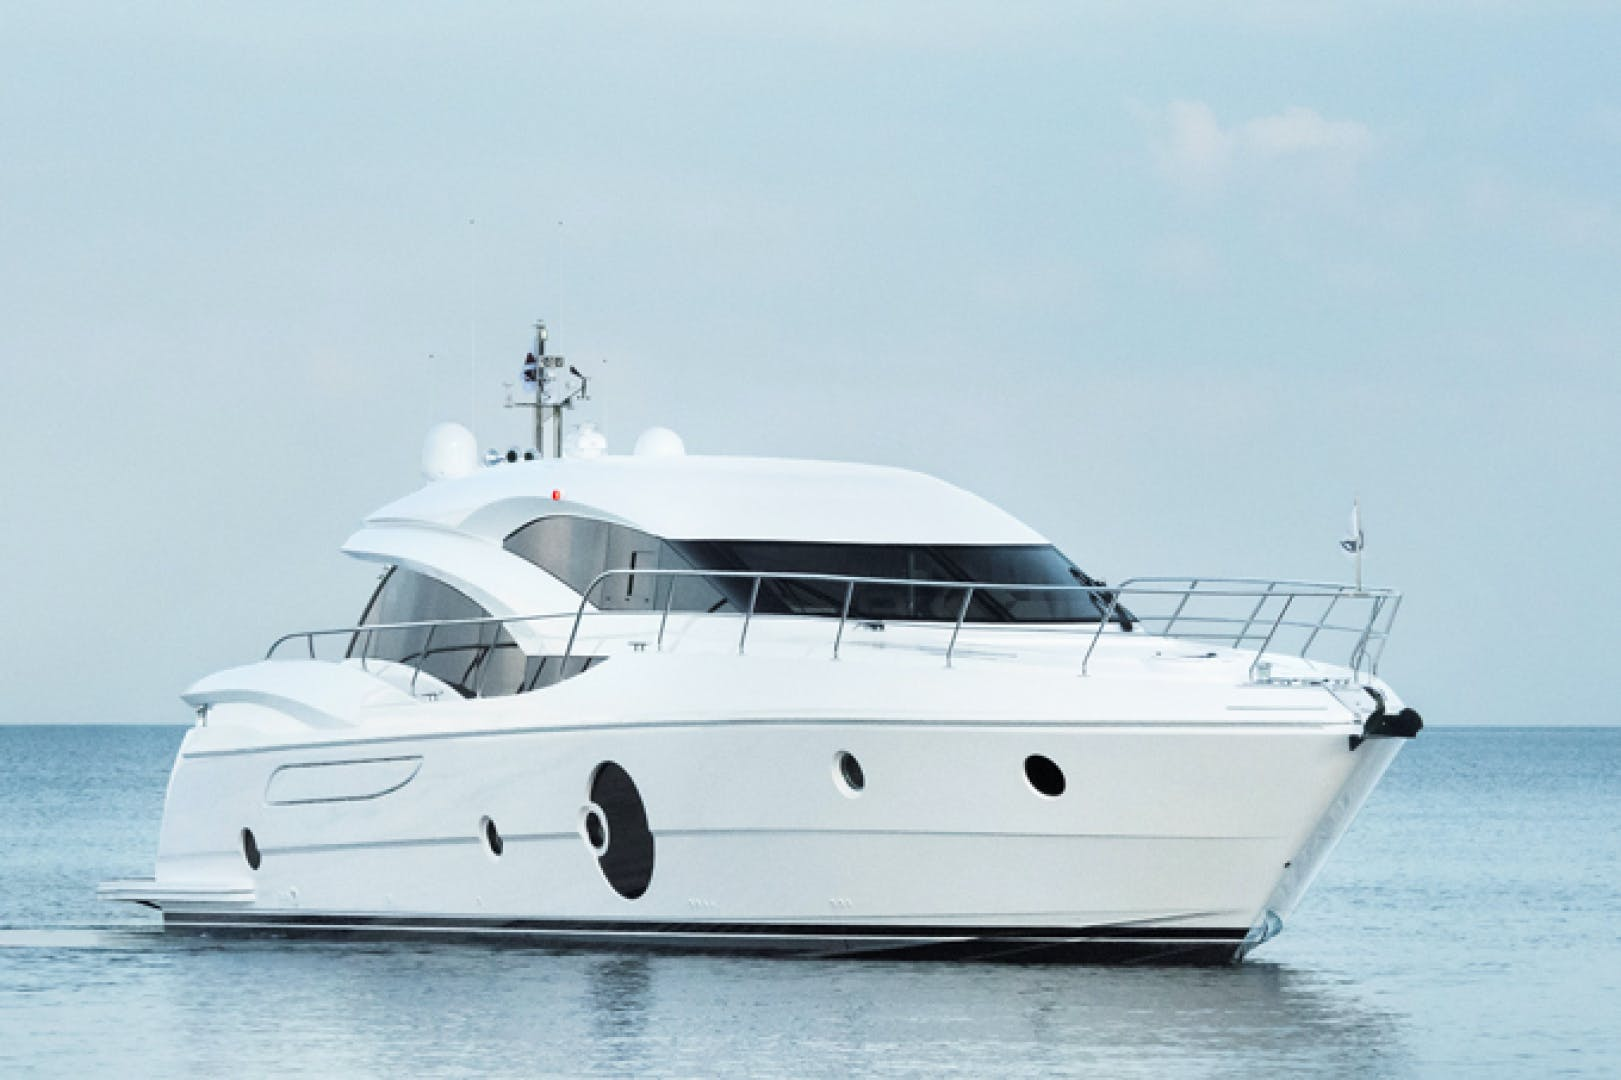 2018 Neptunus 65' Motor Yacht Express LIQUID WISDOM | Picture 7 of 90